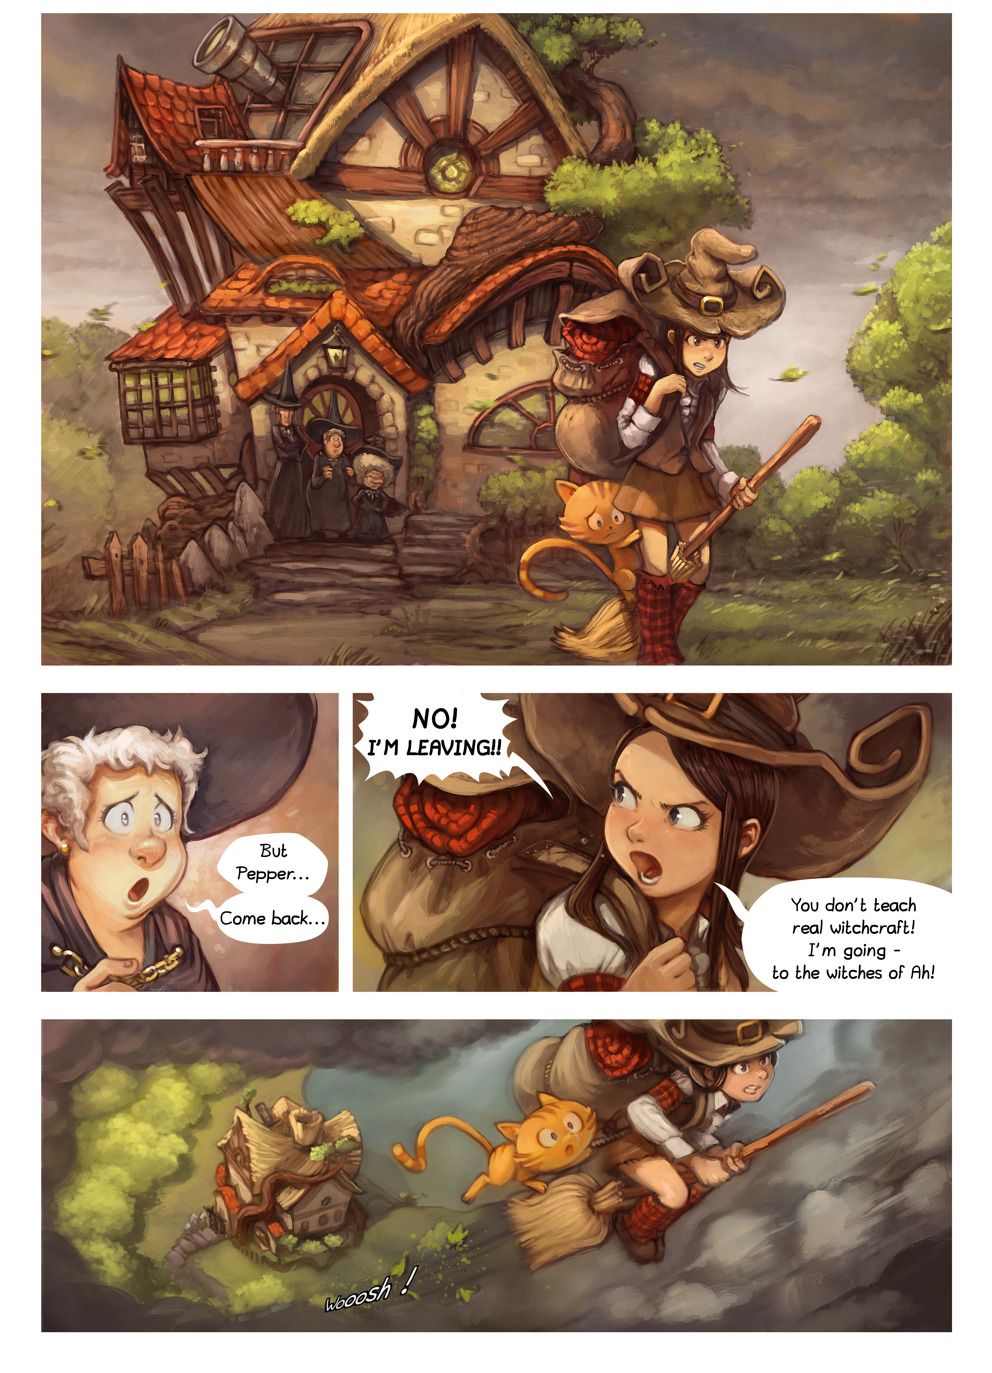 Free online comics Pepper and Carrot episode 17 page 1